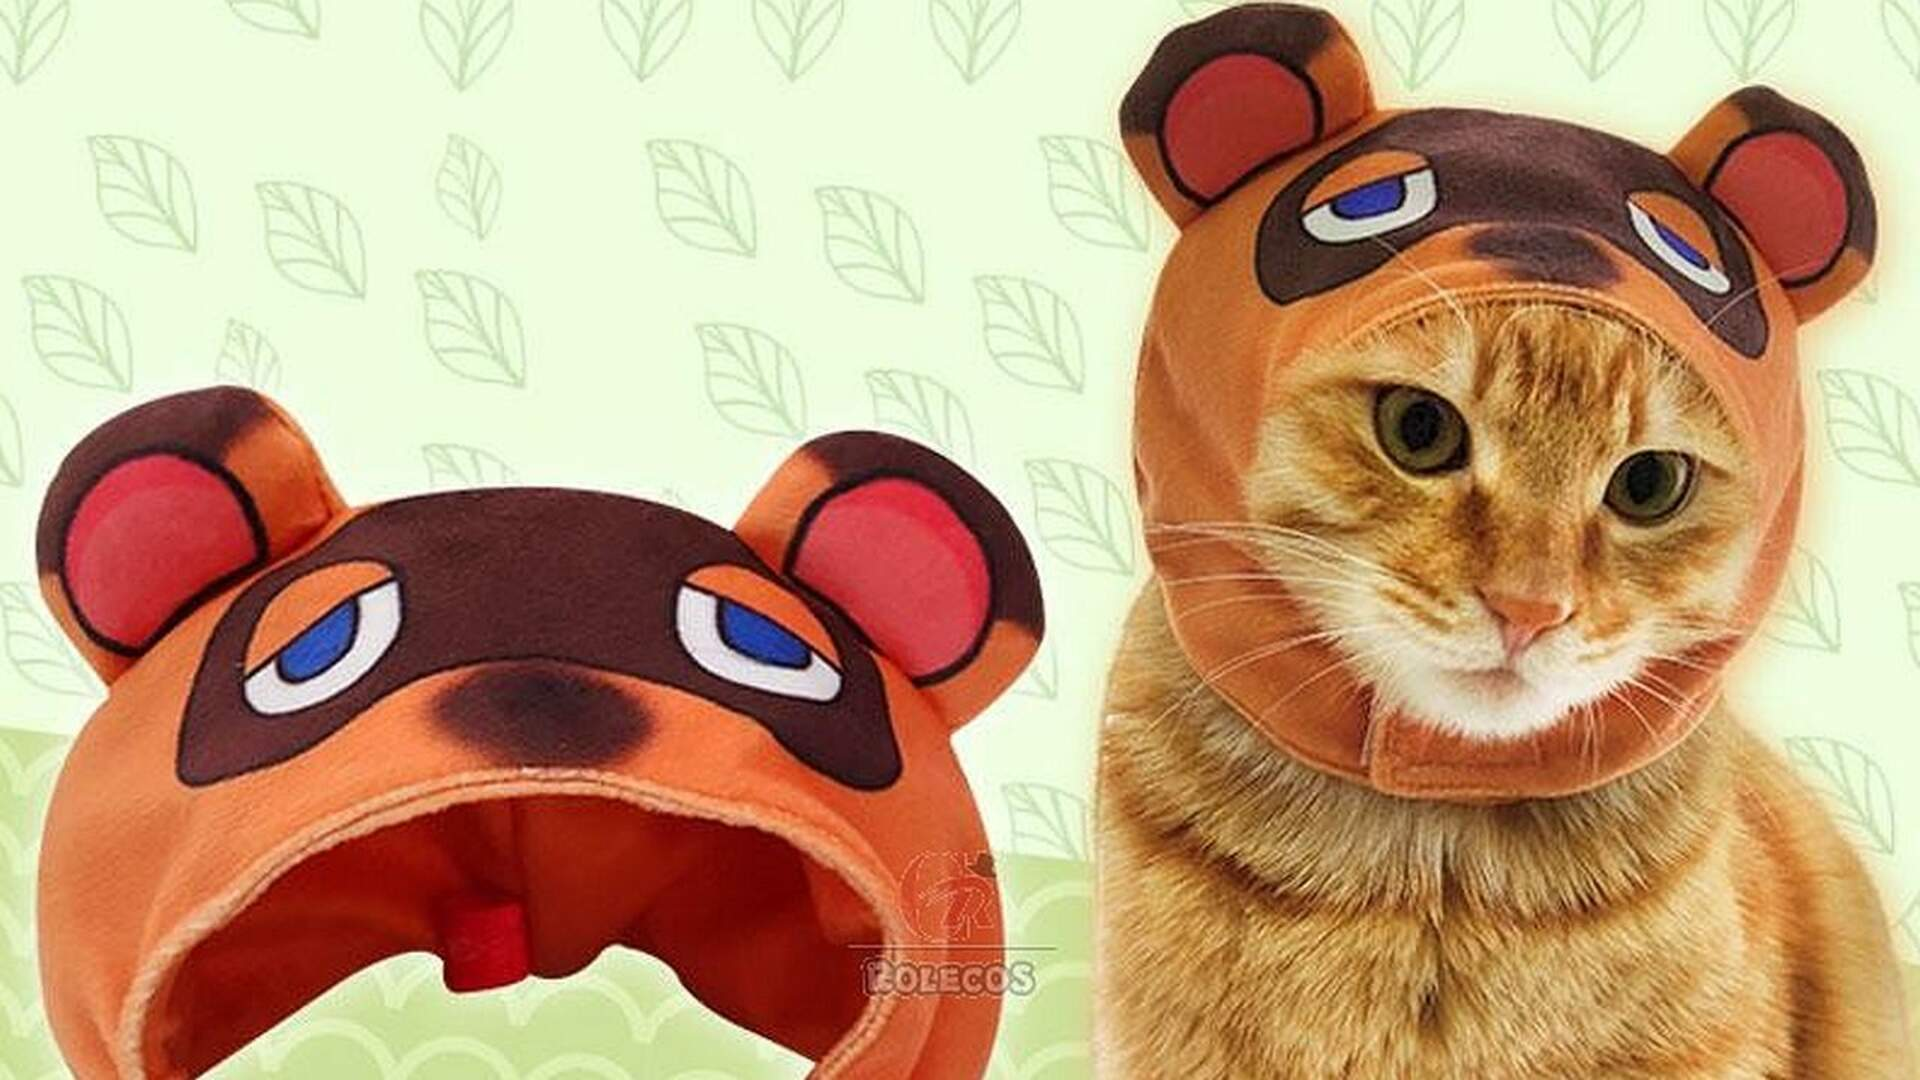 Animal Crossing Cat Cosplay Items Will Encourage Your Cat to Pee in Your Shoes